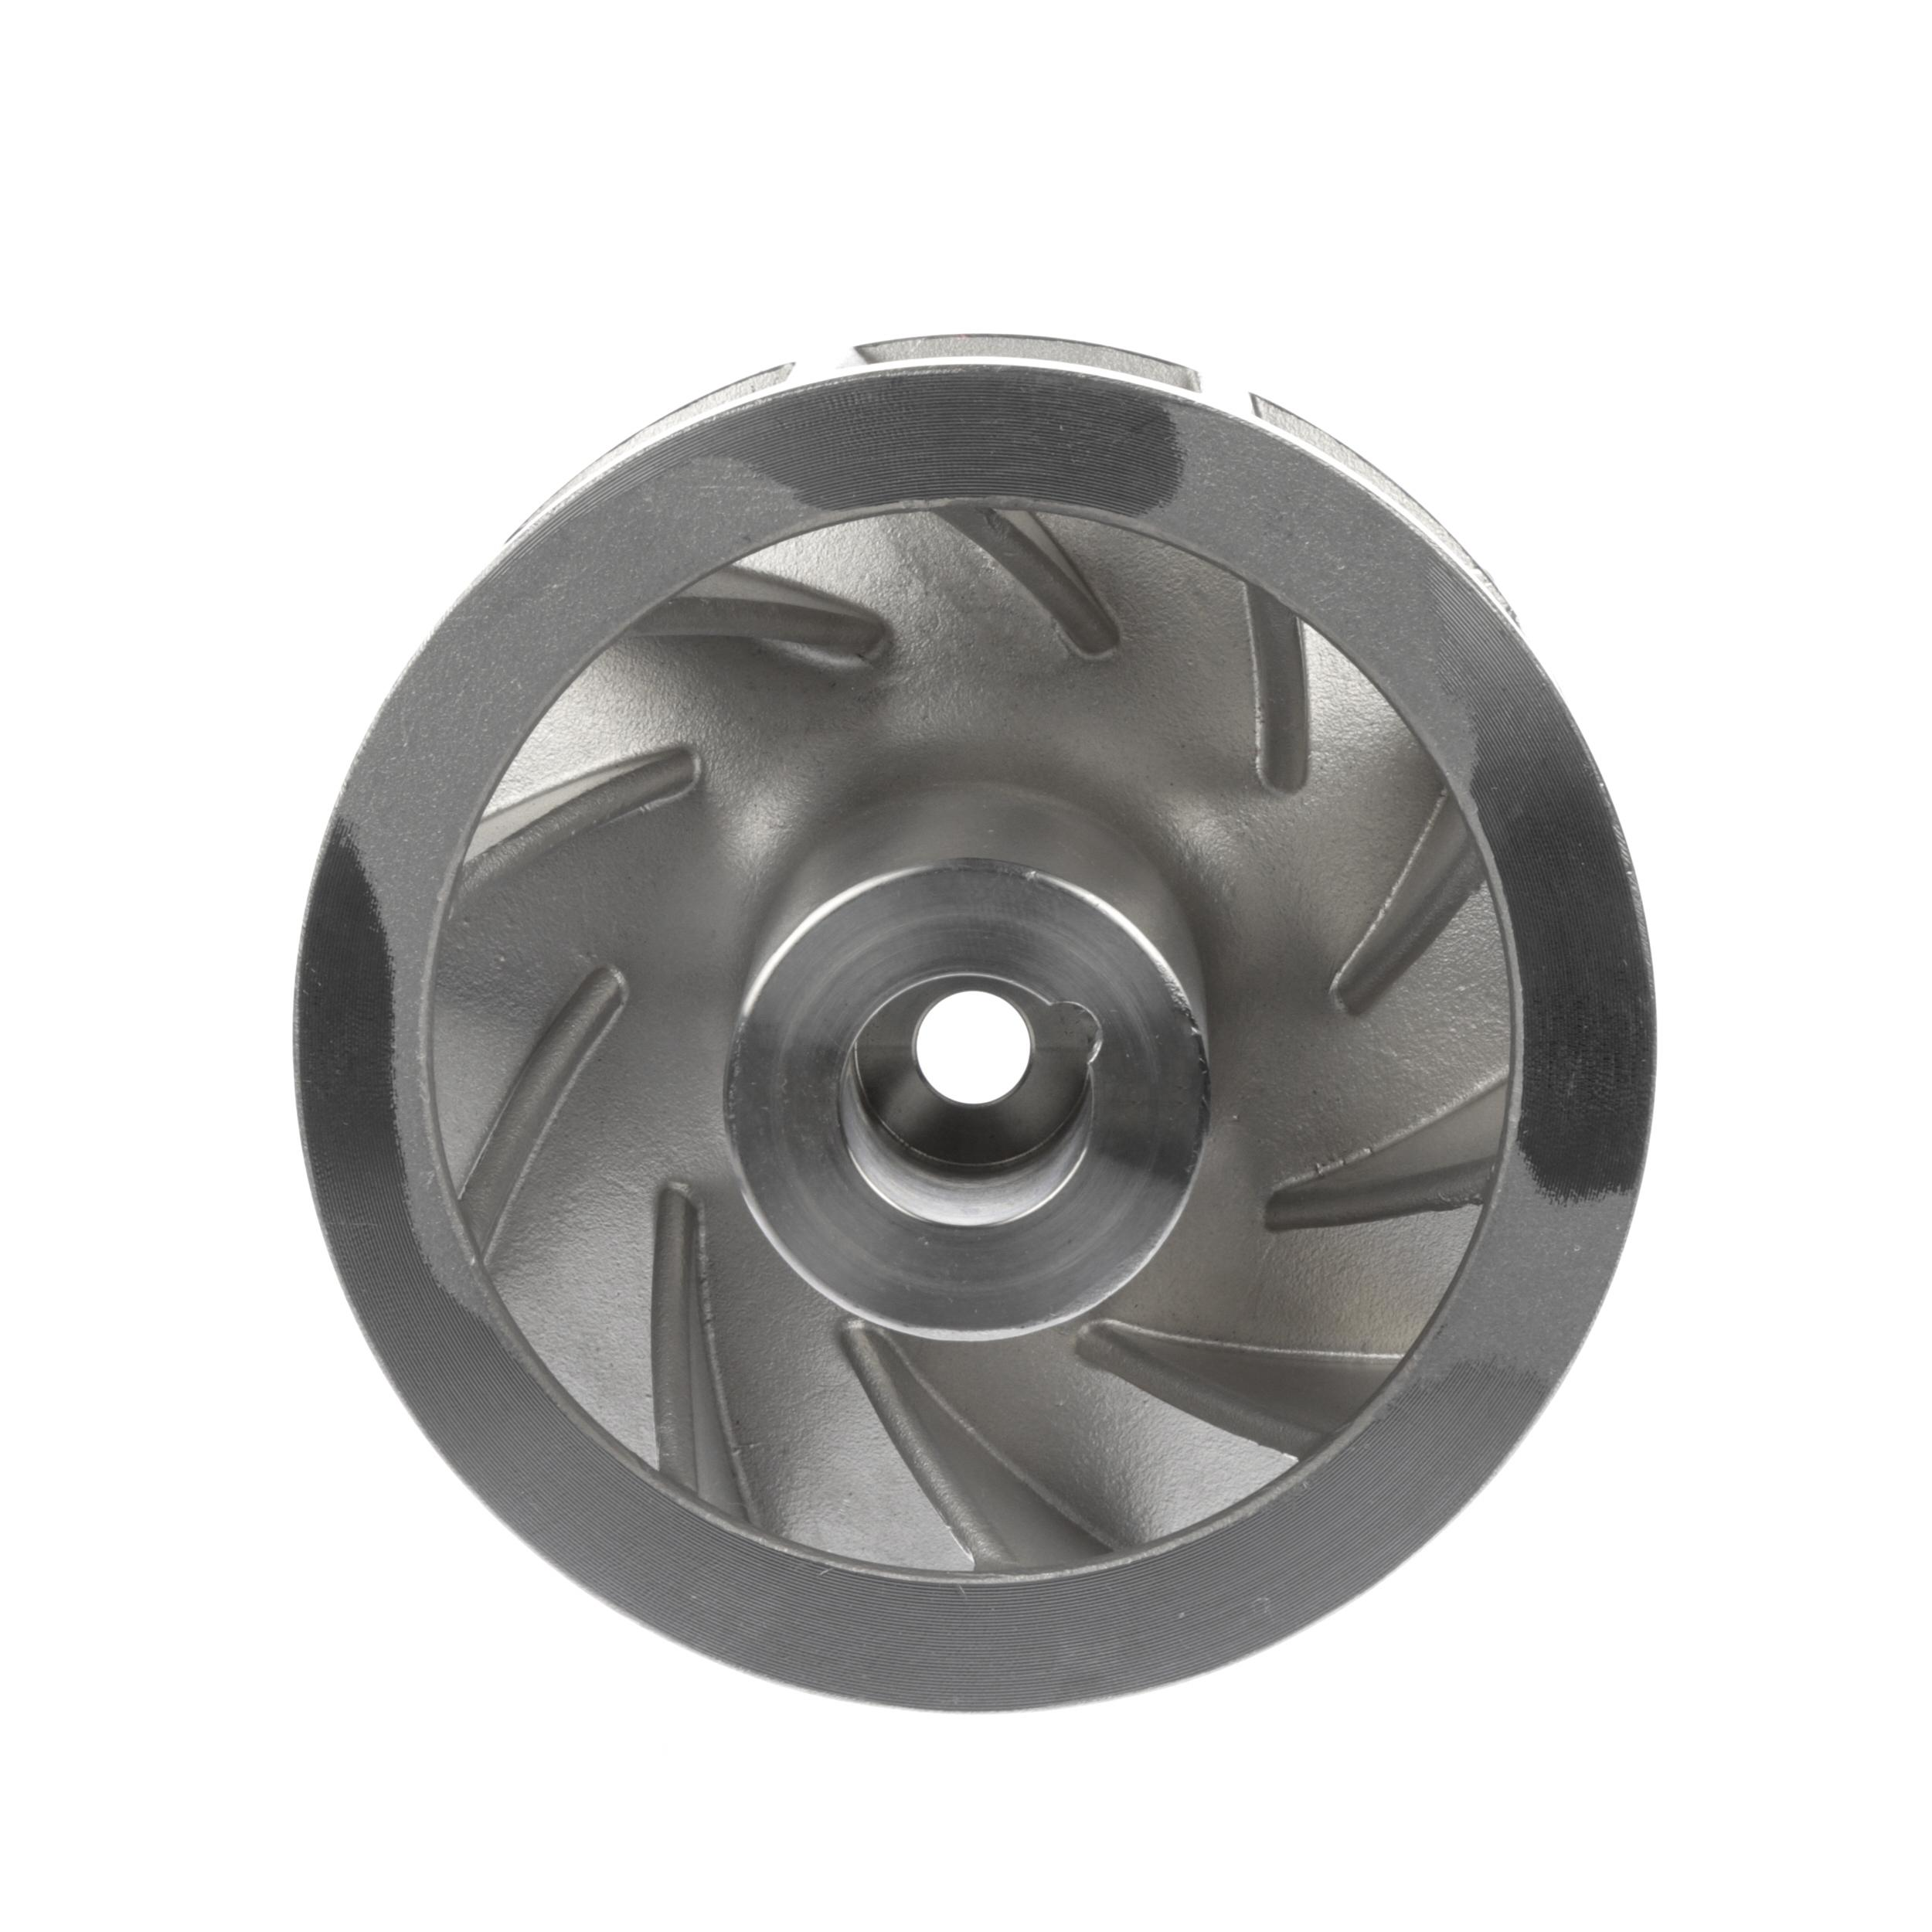 POWER SOAK IMPELLER 10 BLADES LH MP#3175